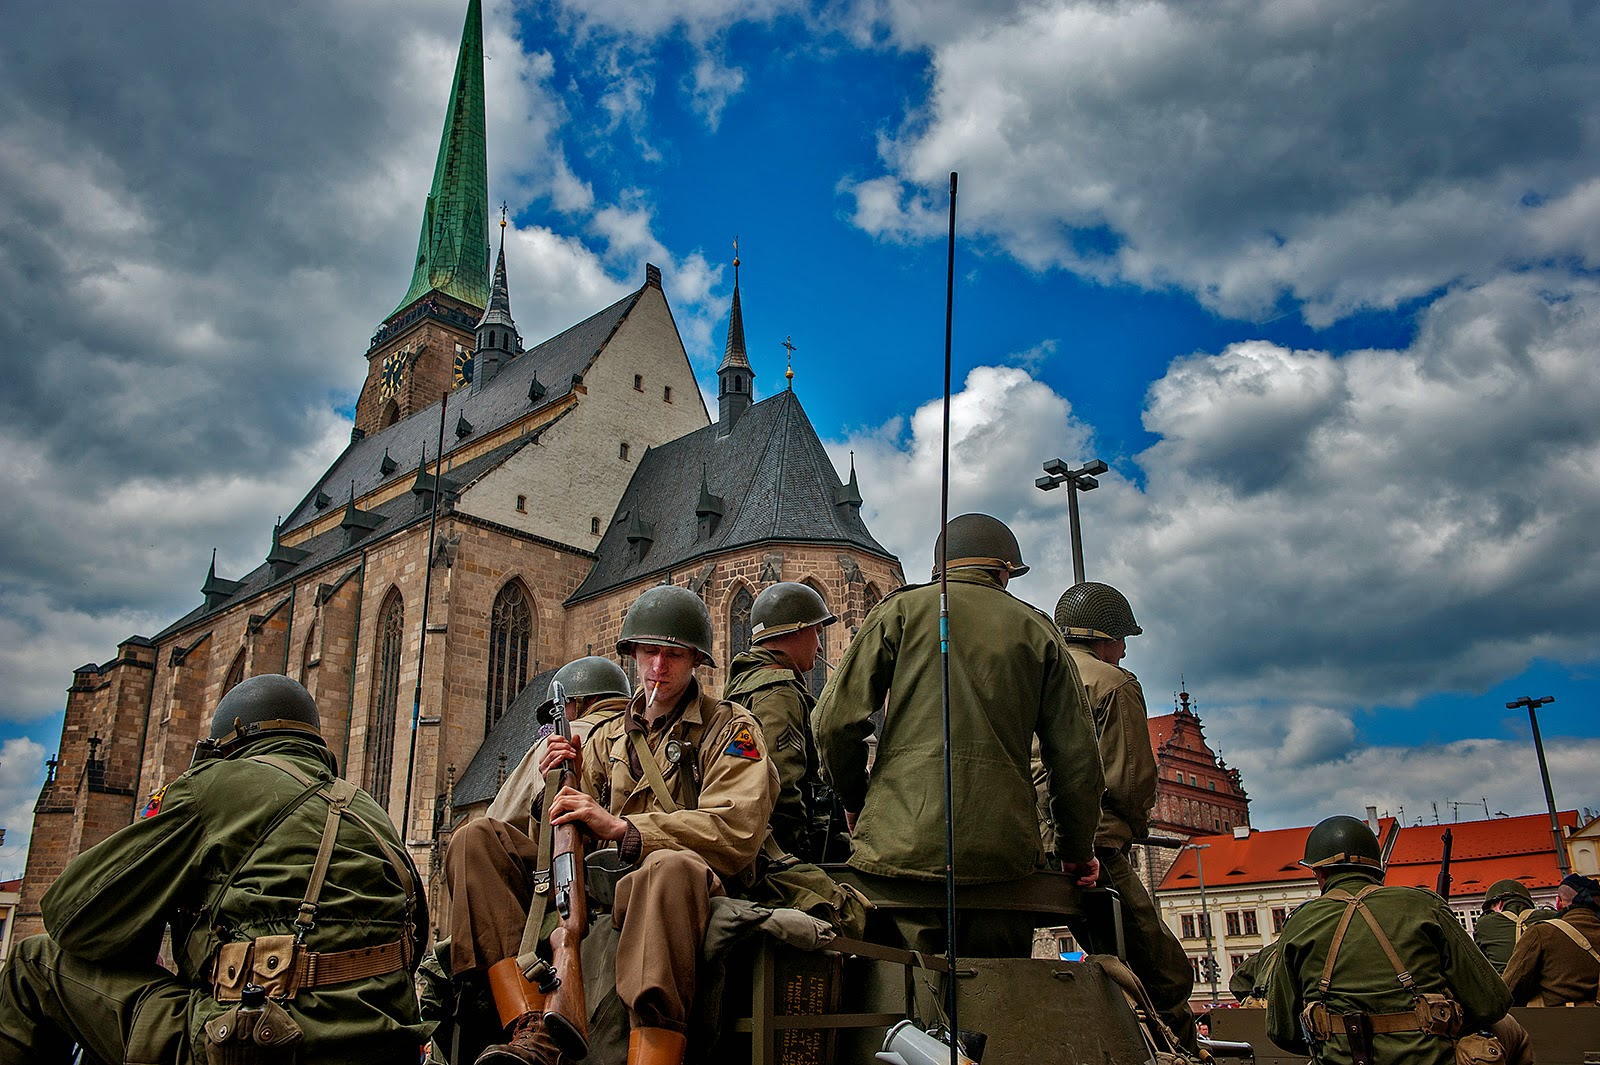 WWII, Plzen, World War II, U.S. WWII soldiers, 16 Armored Division, Liberation of Plzen, Czech Republic, Czechoslovakia